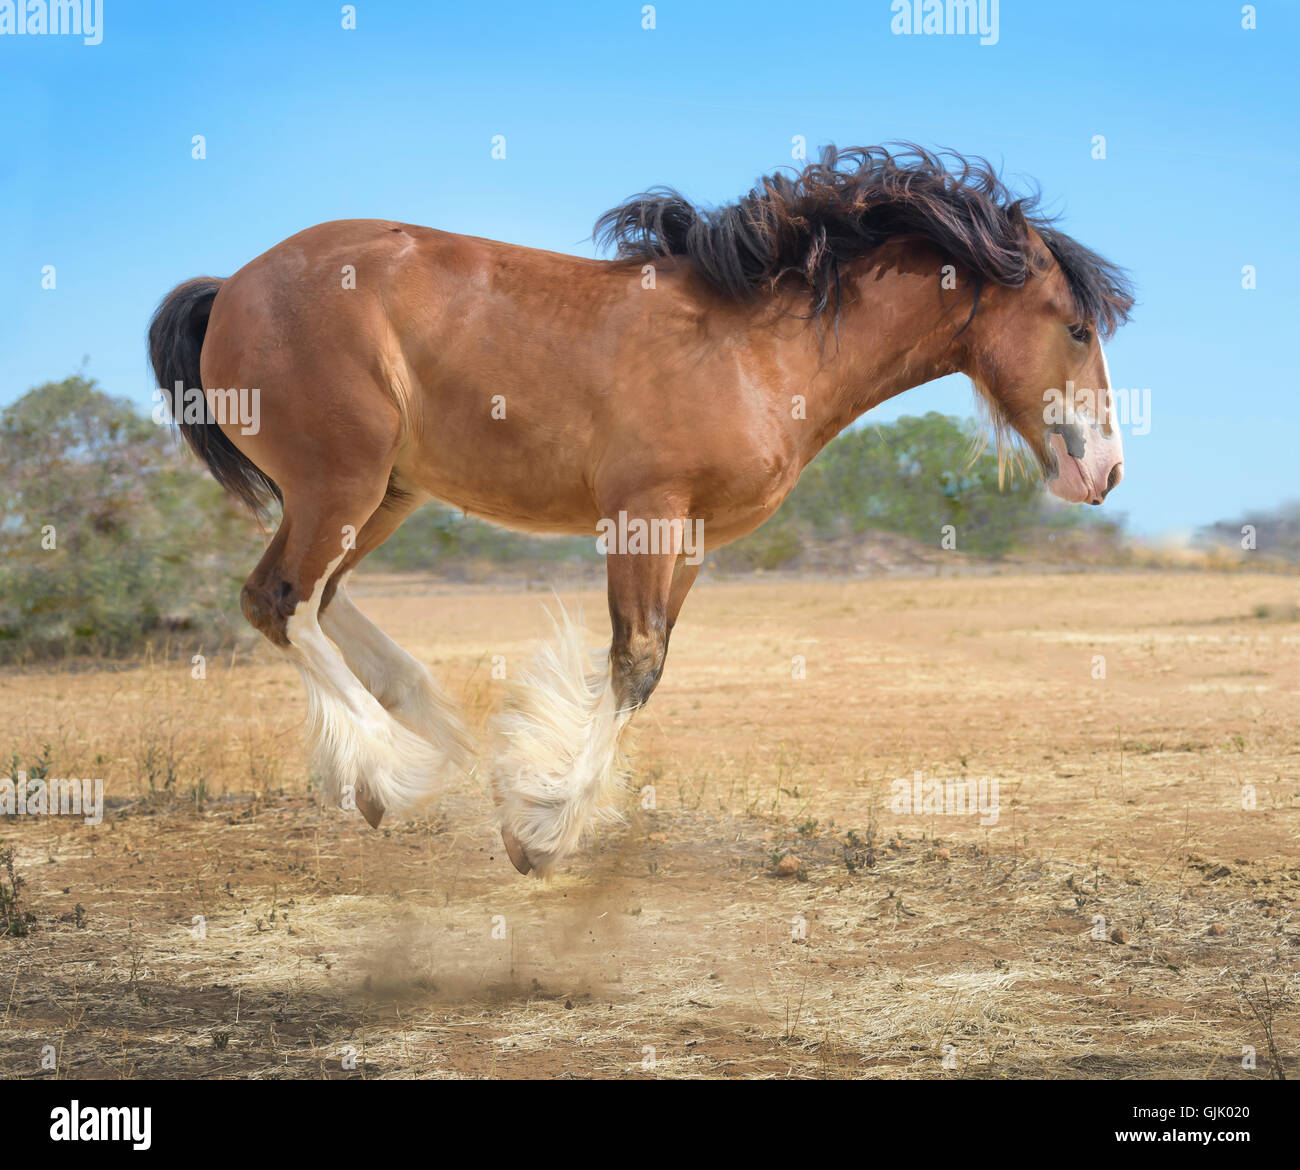 Gypsy Vanner Horse yearling filly bucks with enthusiasm - Stock Image